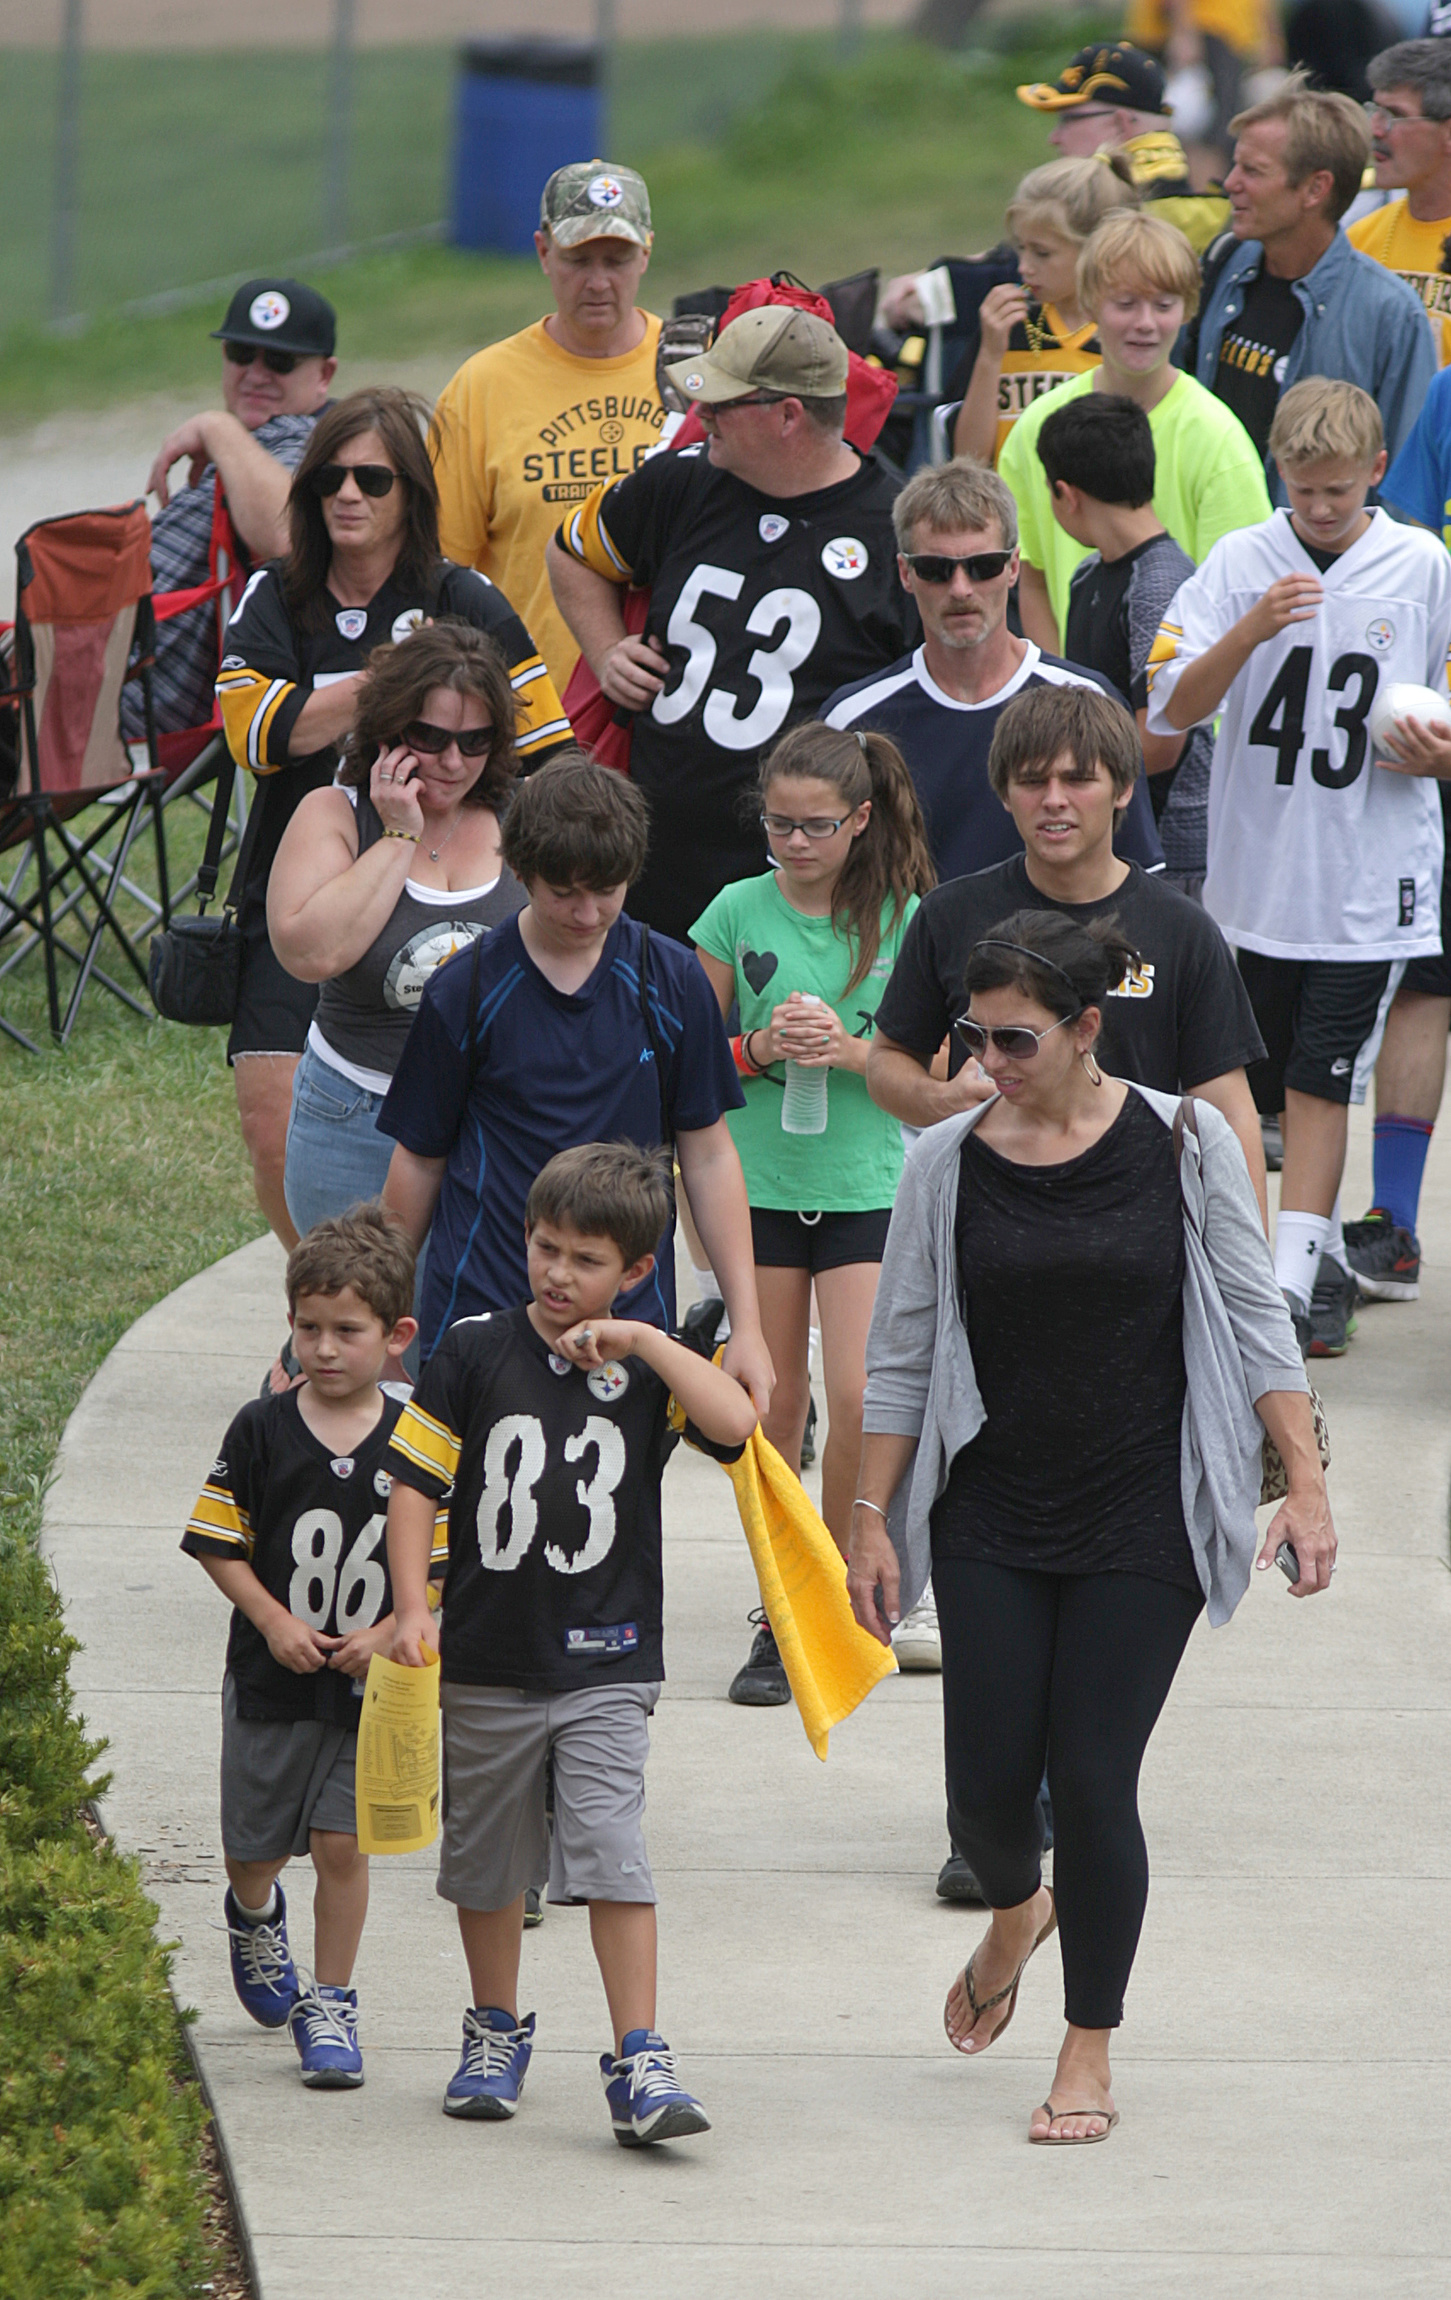 Fans arrive at Pittsburgh Steelers football training camp at St. Vincent College in Pennsylvania